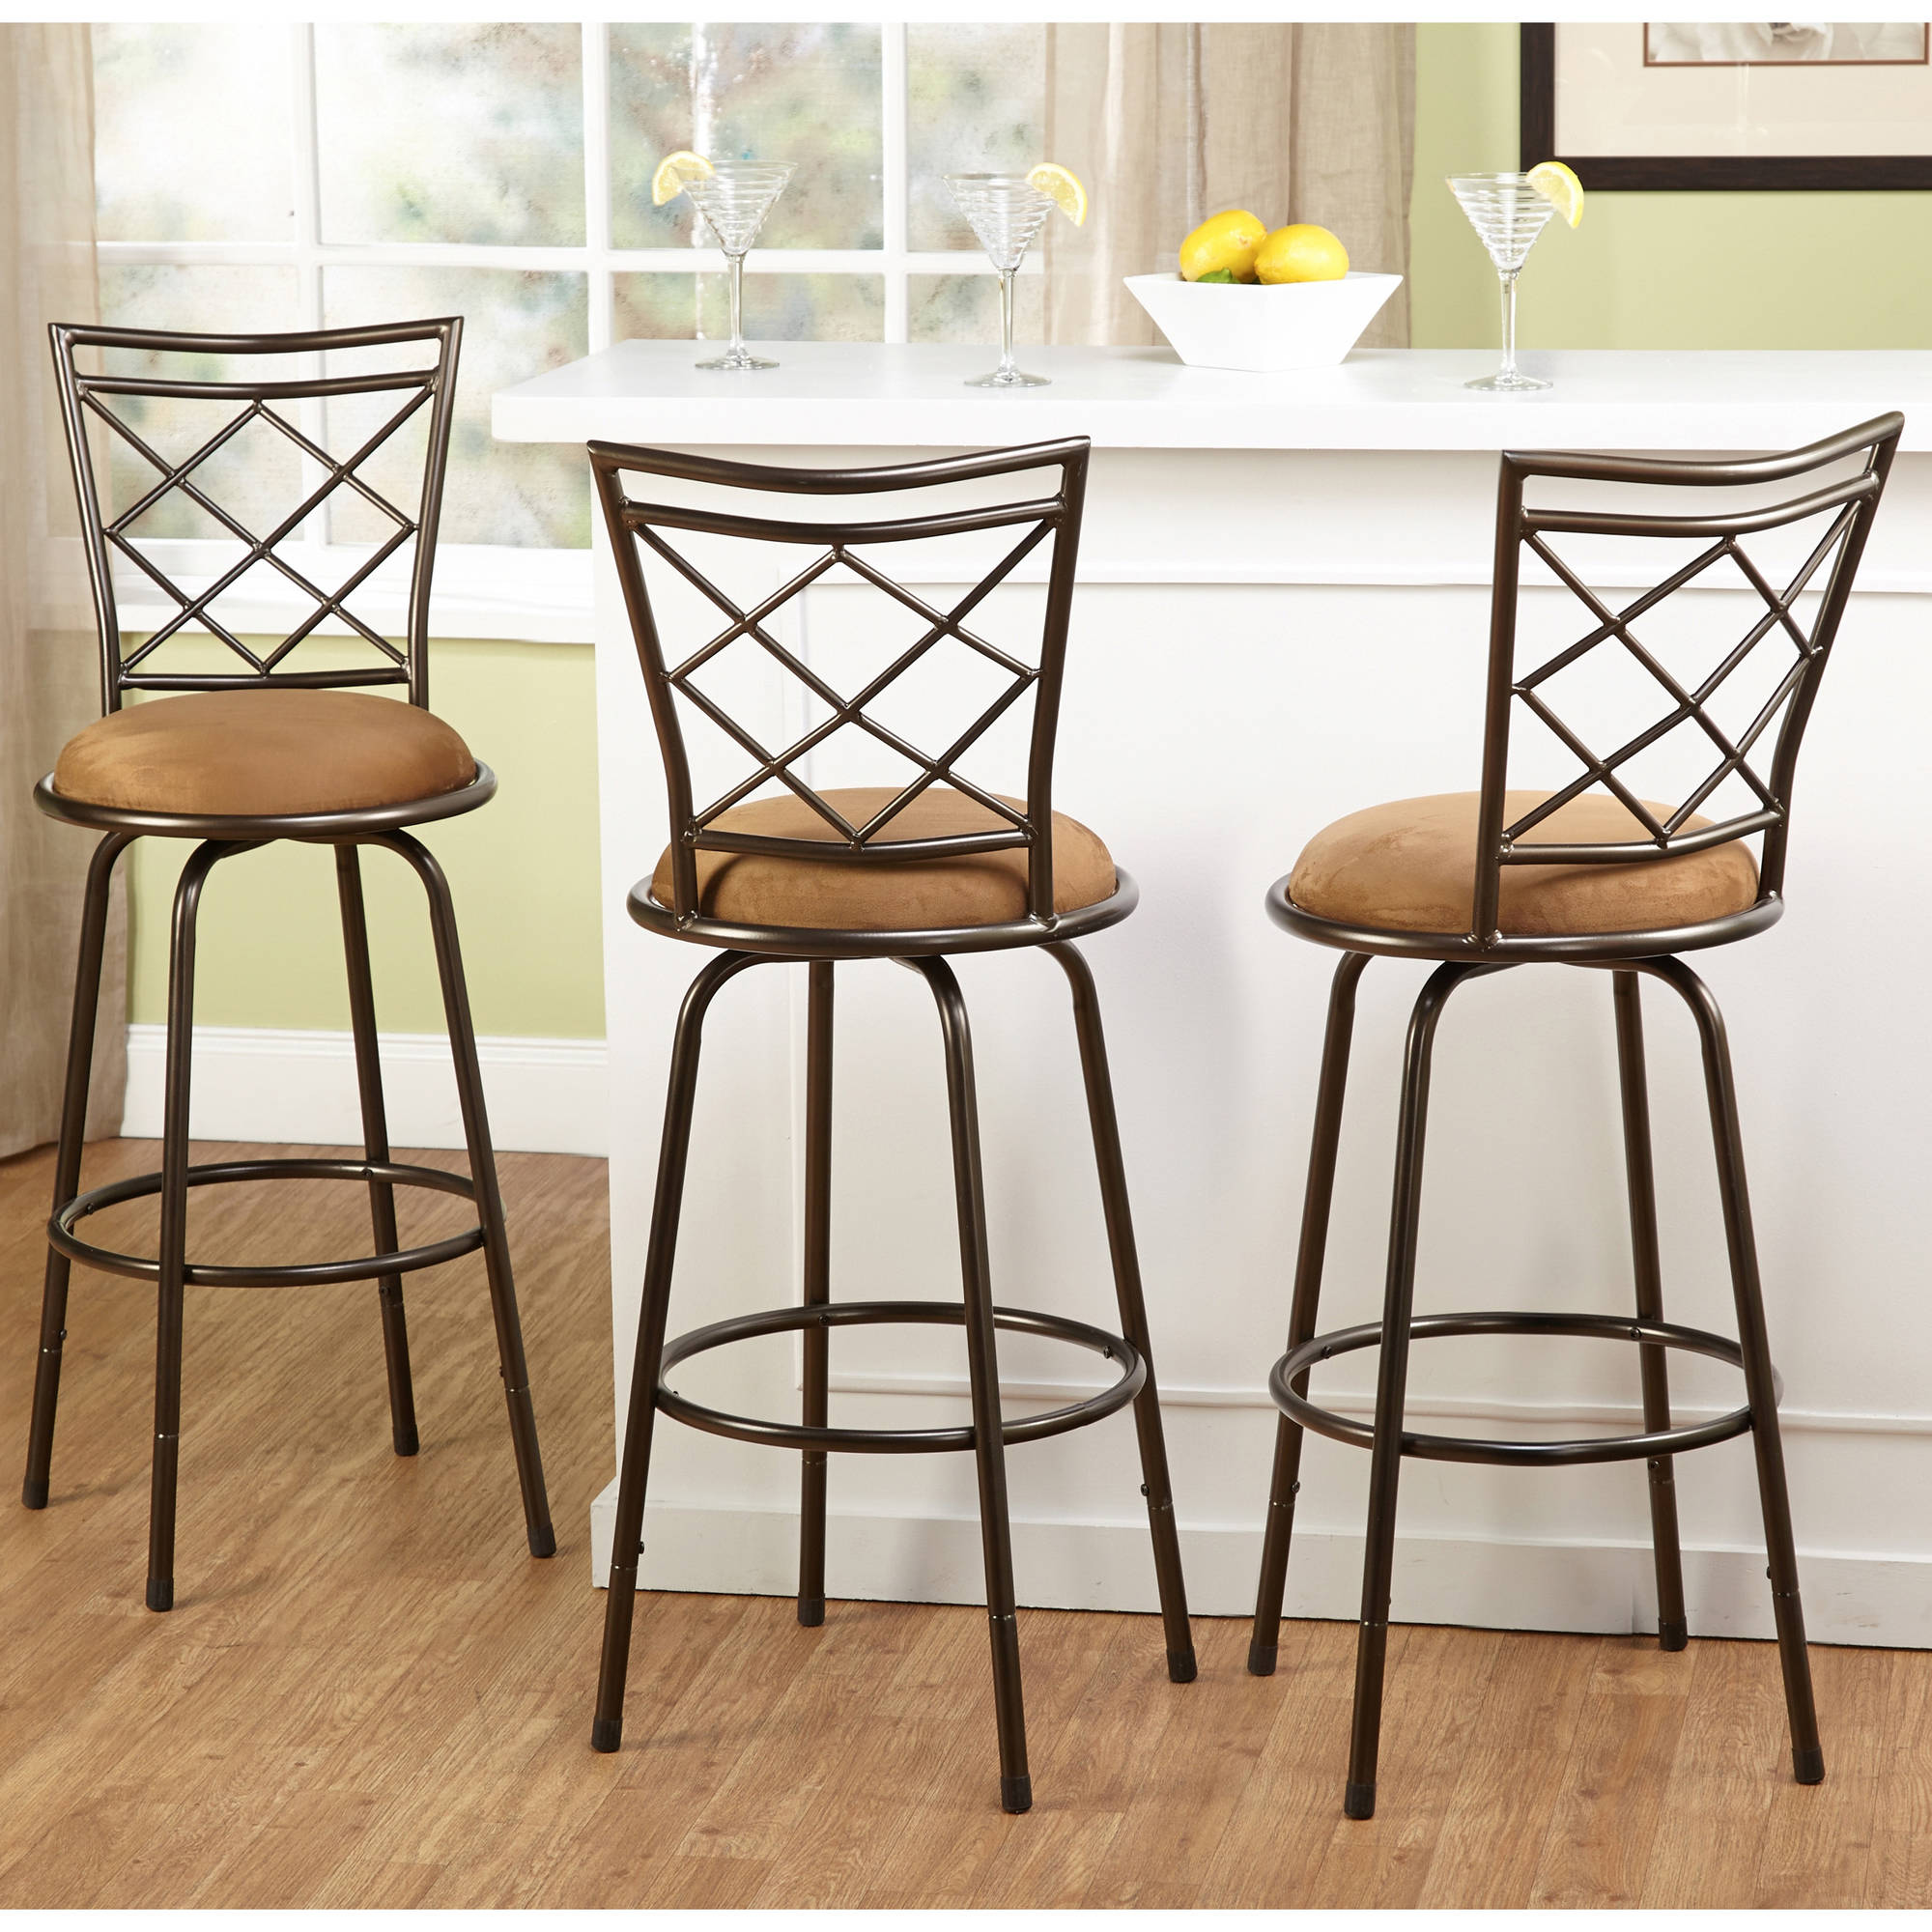 3 Piece Avery Ajustable Height Barstool Multiple Colors Walmart